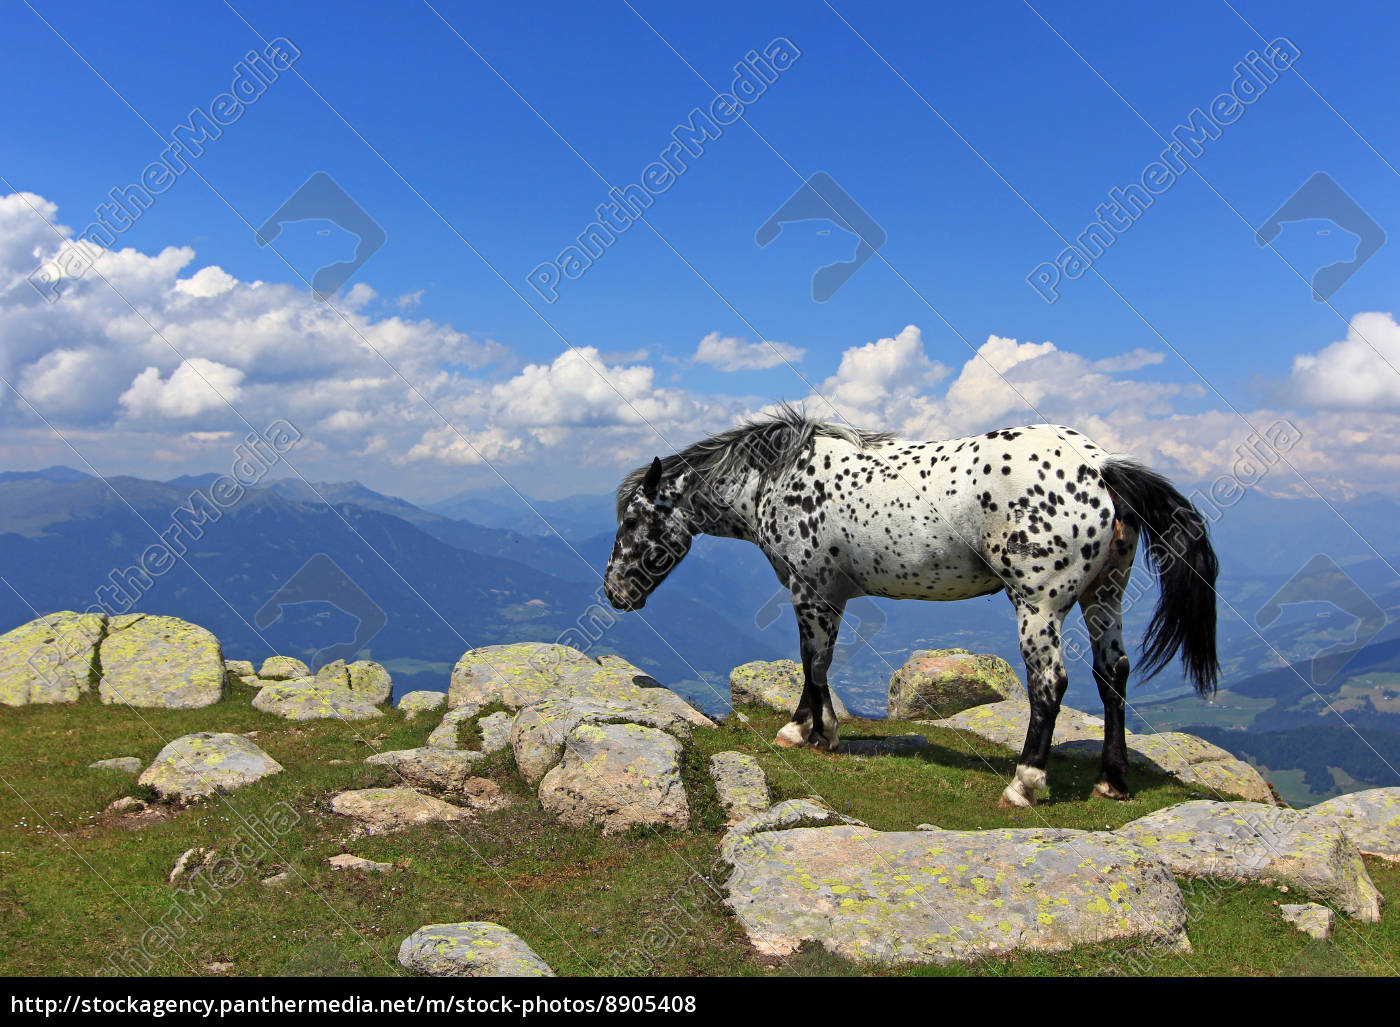 horse, summit, rock, sight, view, outlook - 8905408